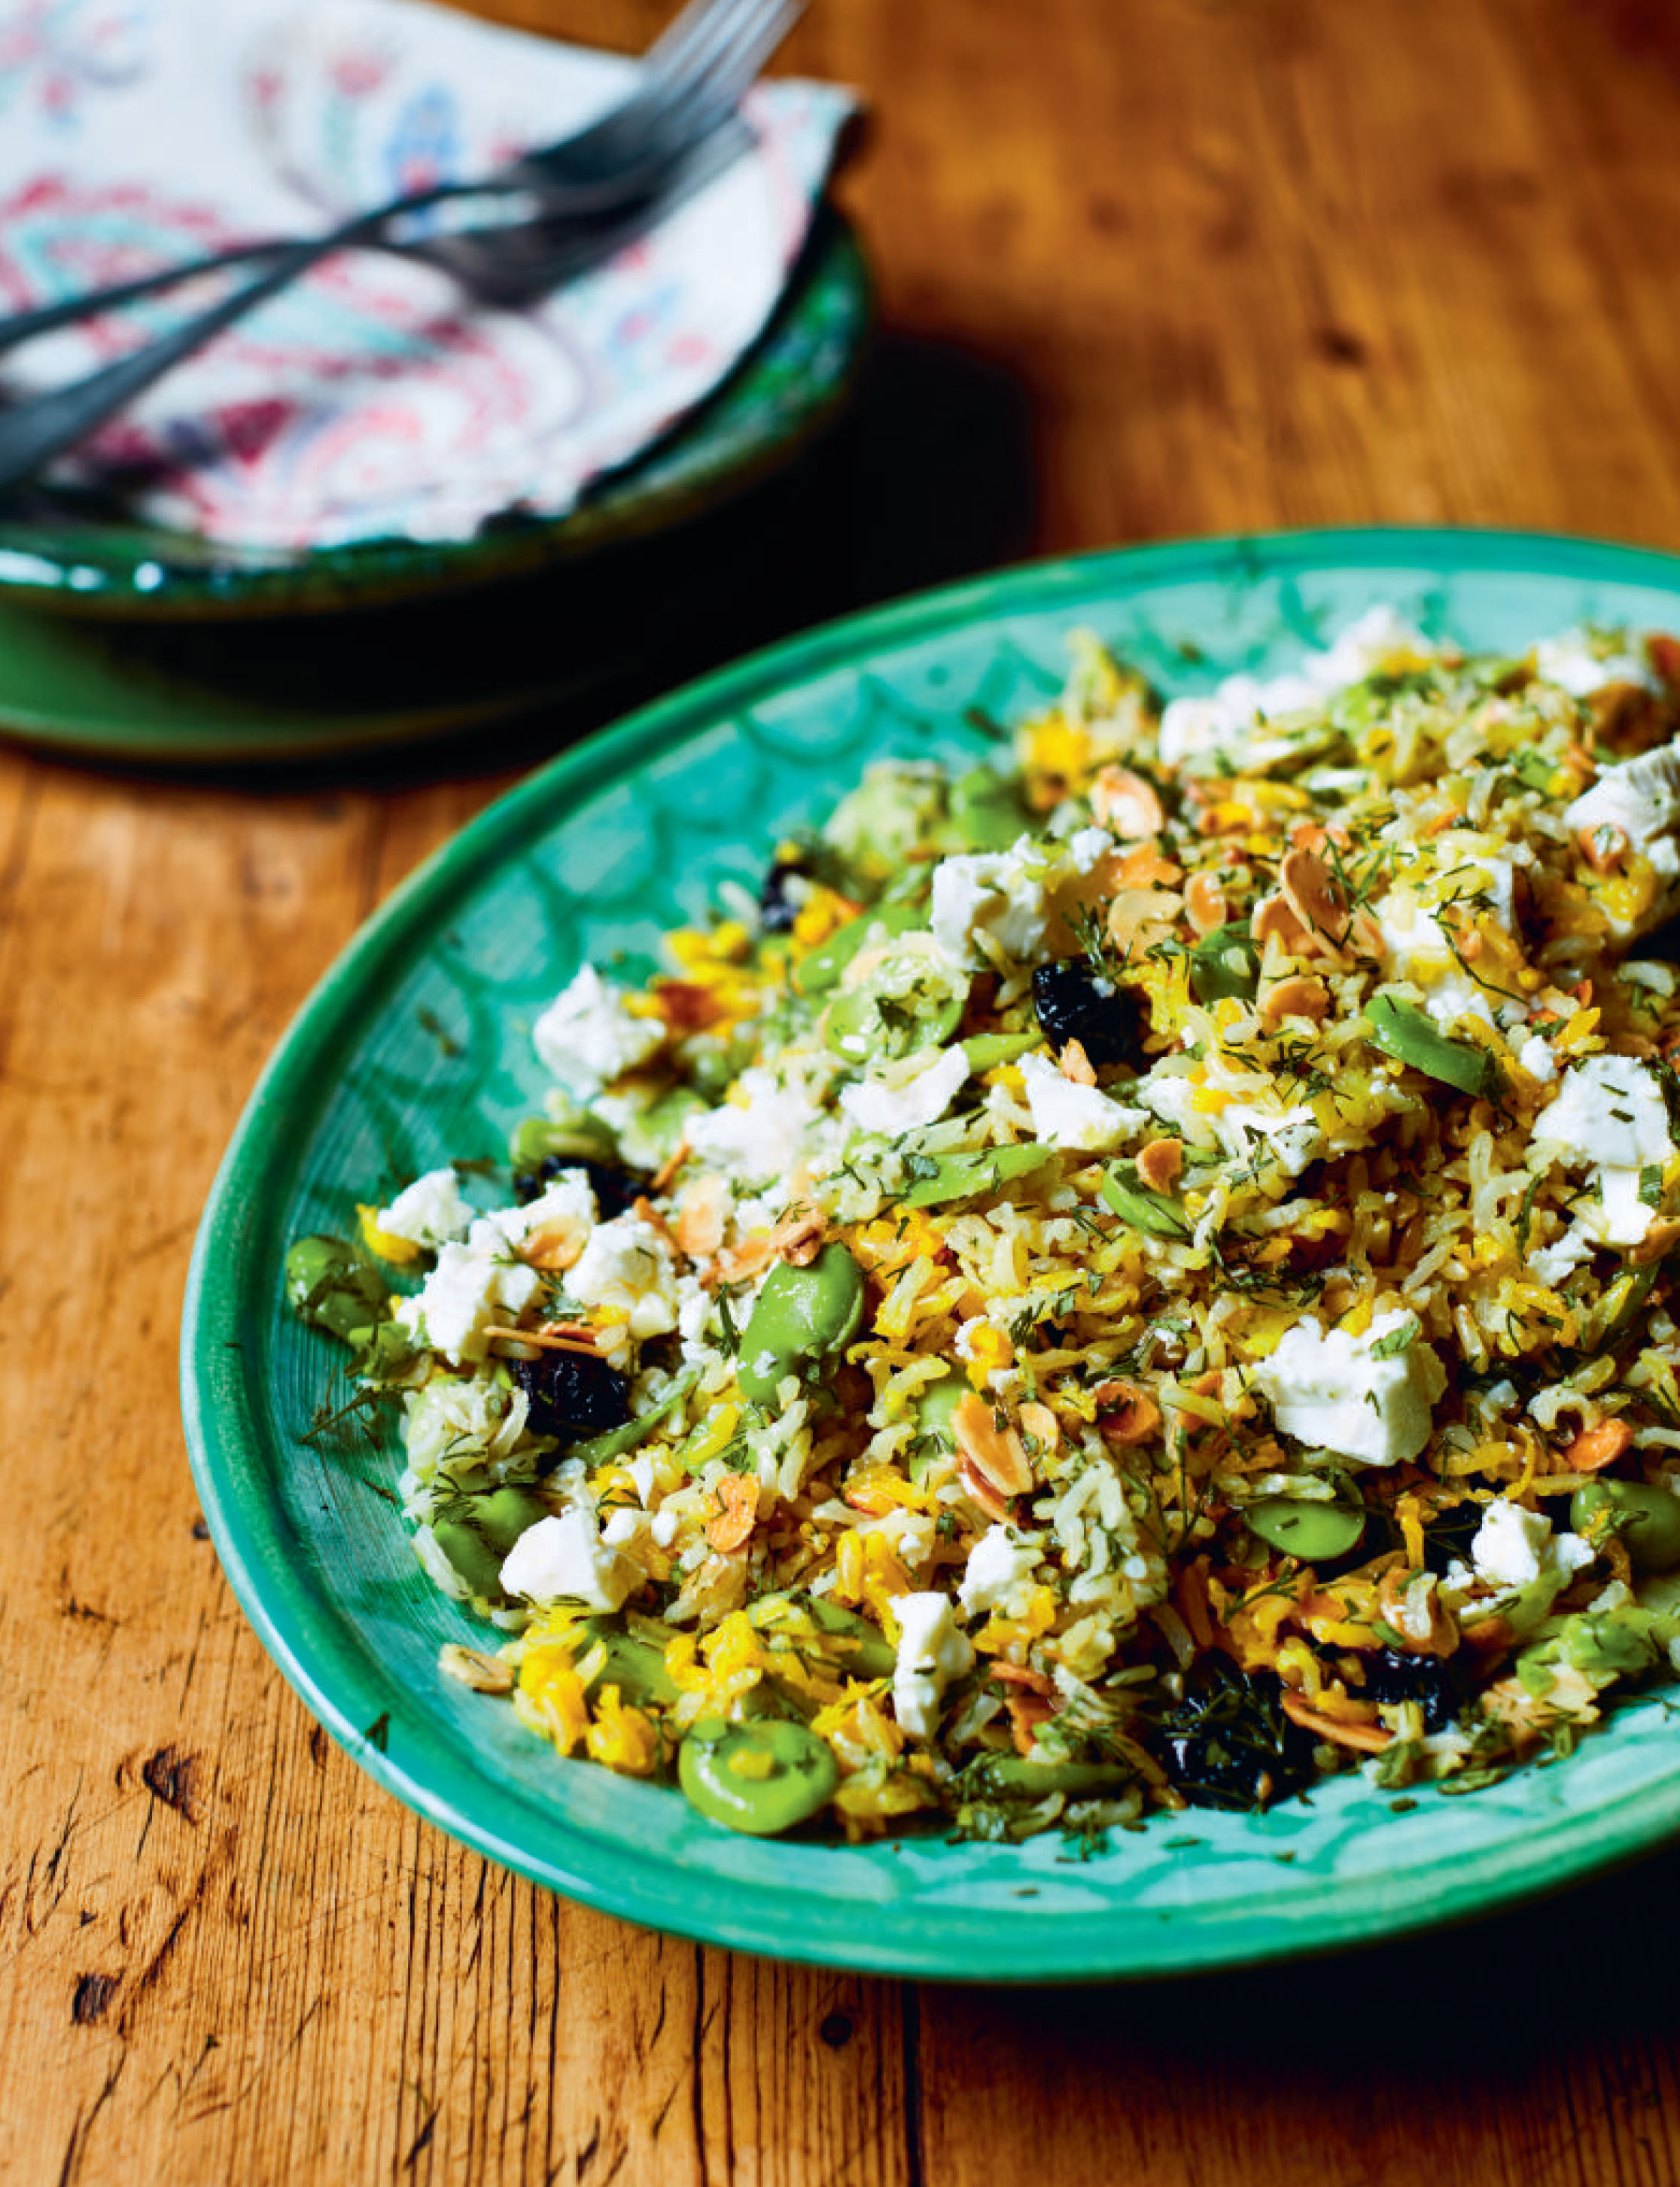 Broad bean, sour cherry and rice salad